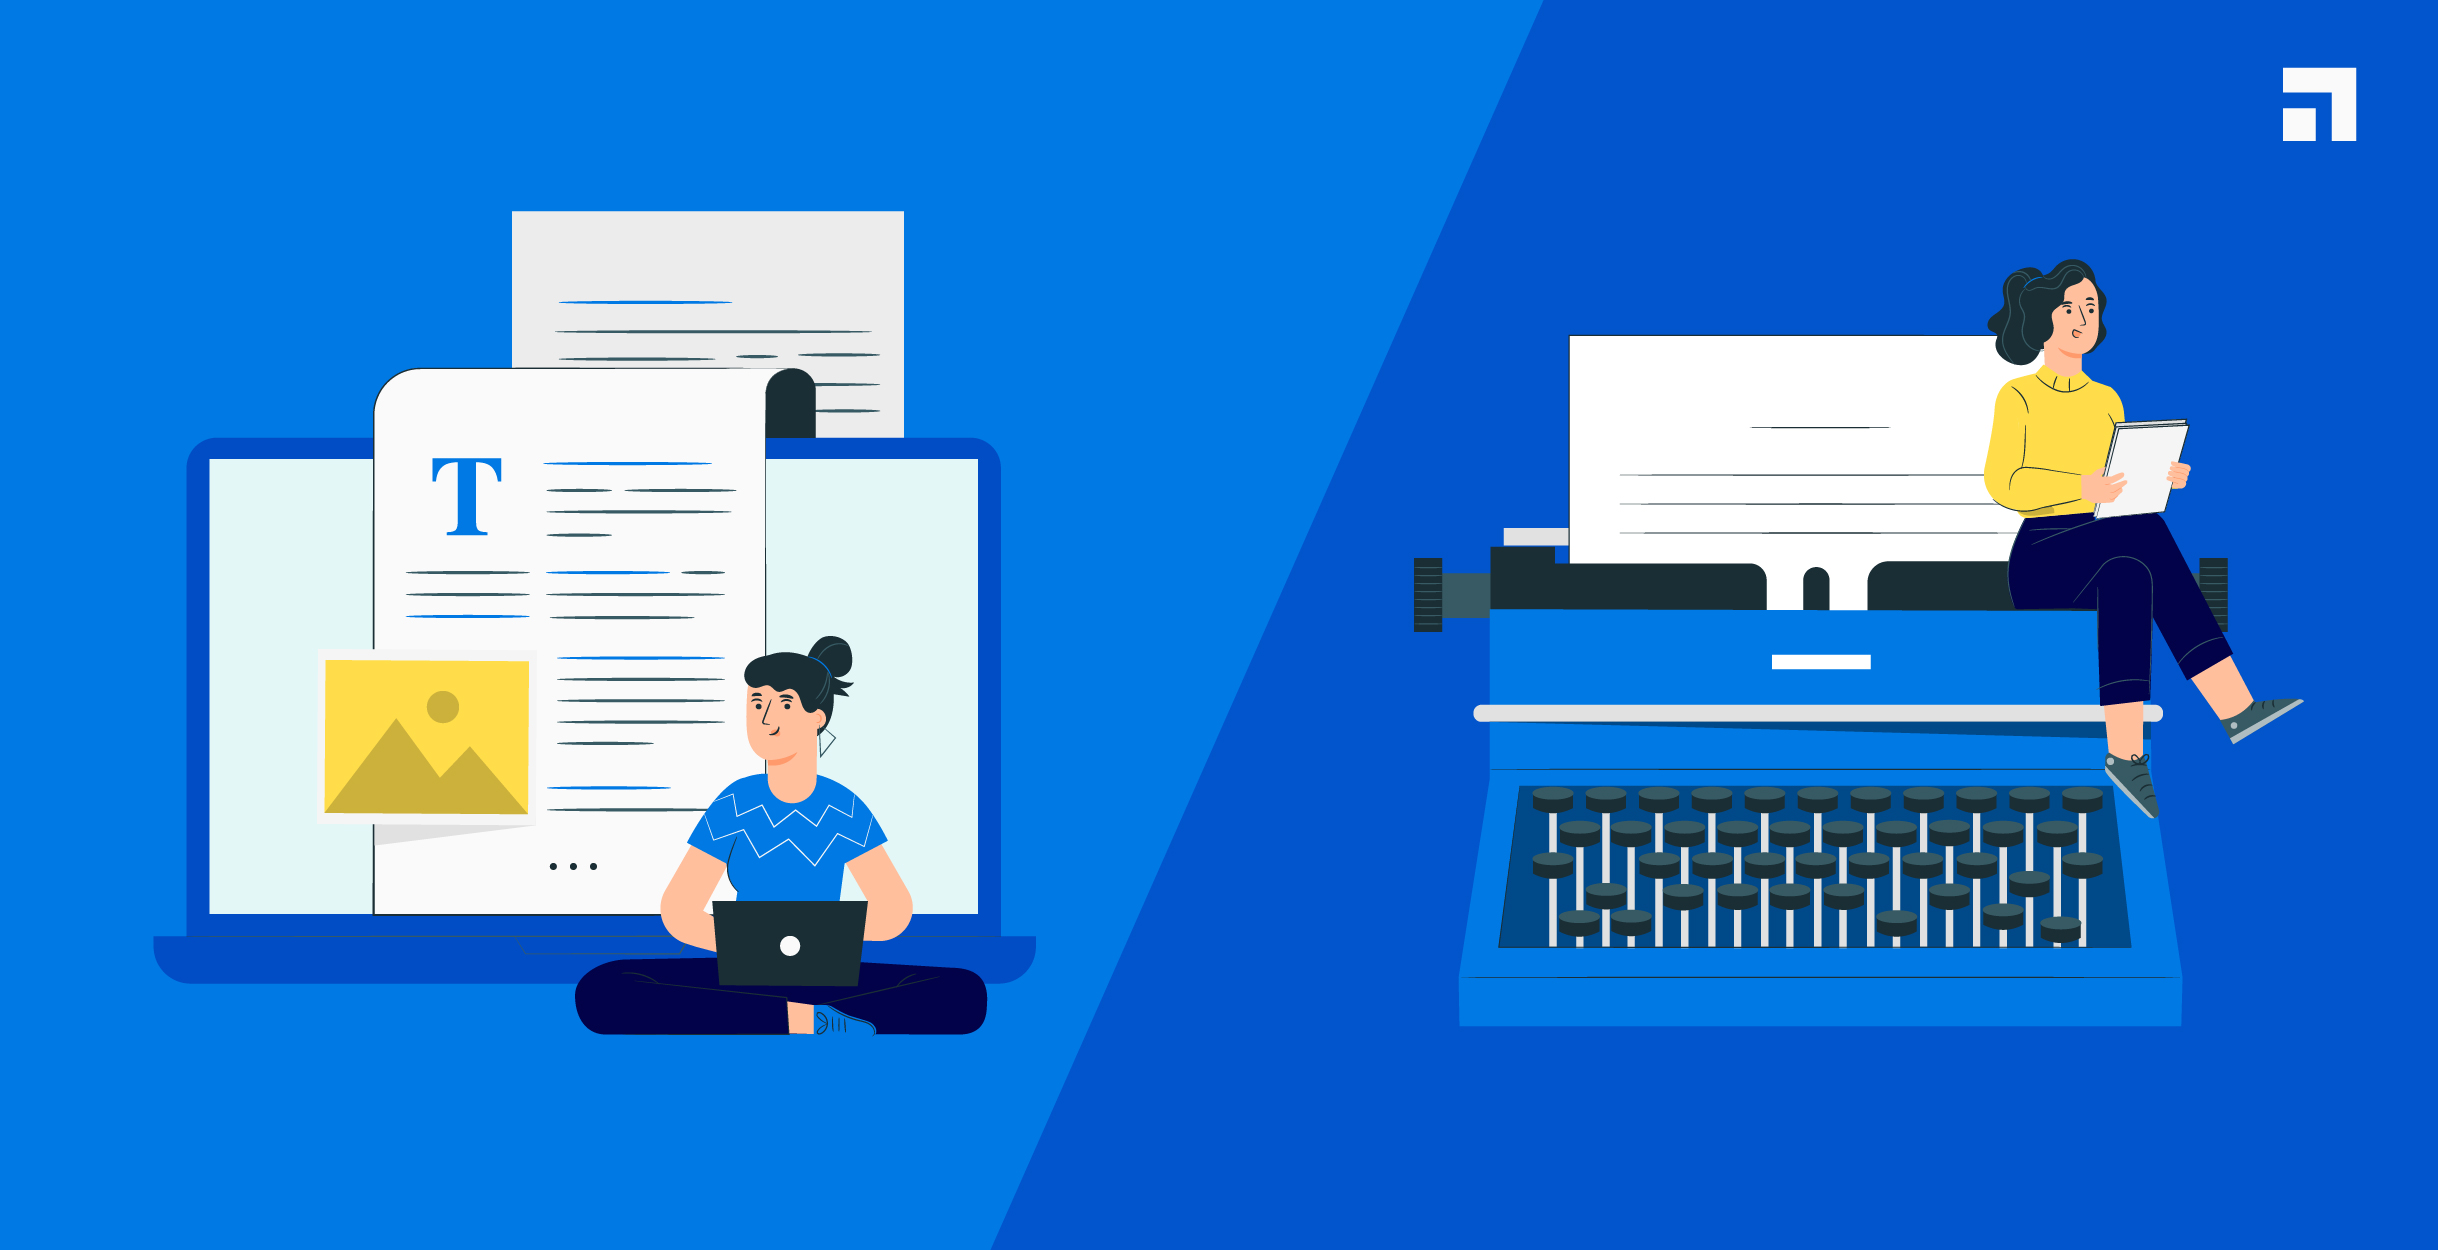 Copywriting vs Content Writing: What are the Differences & Similarities?